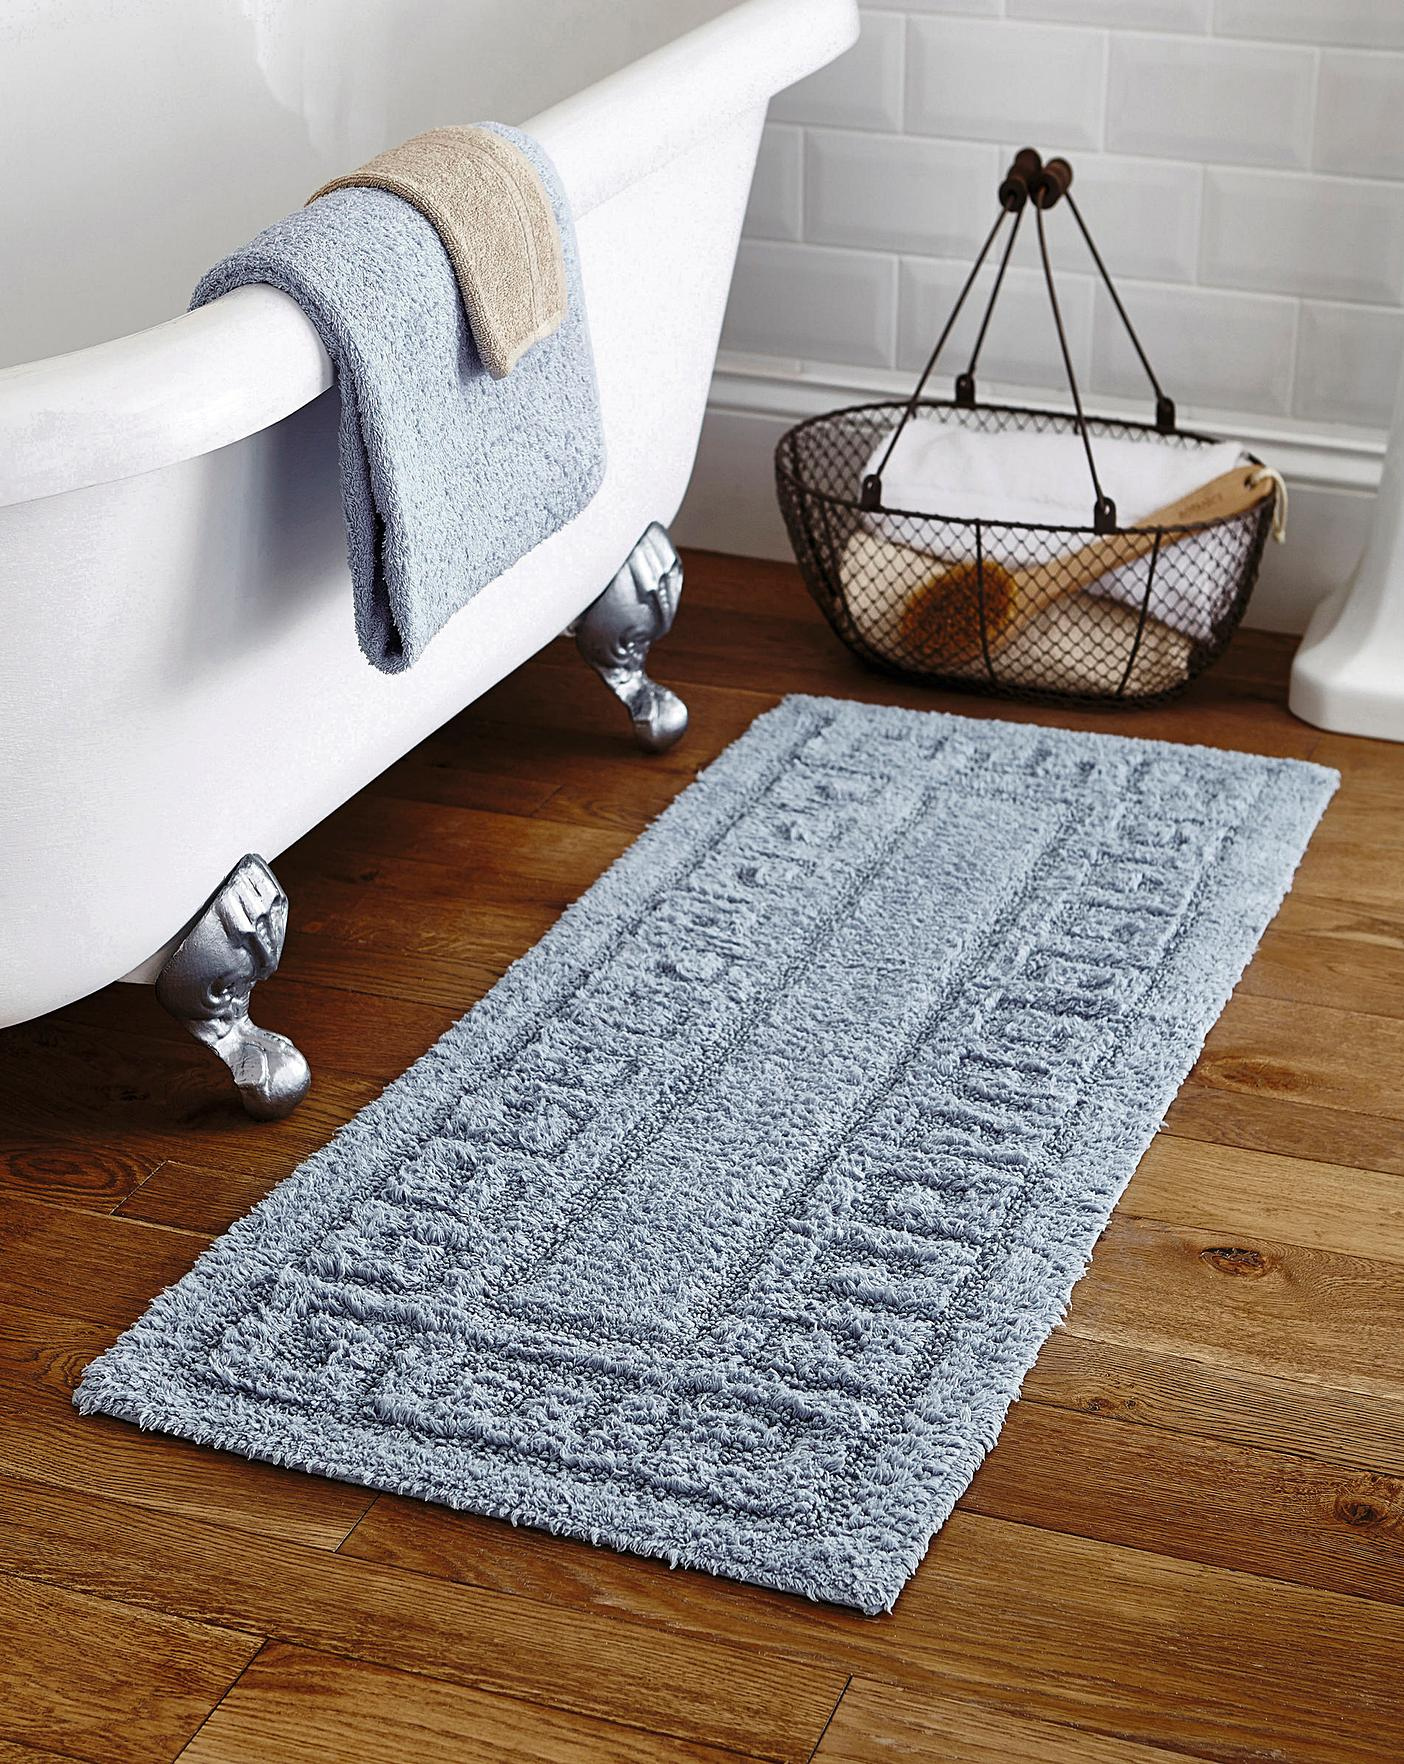 Extra Long Bathroom Rugs Uk Image Of Bathroom And Closet